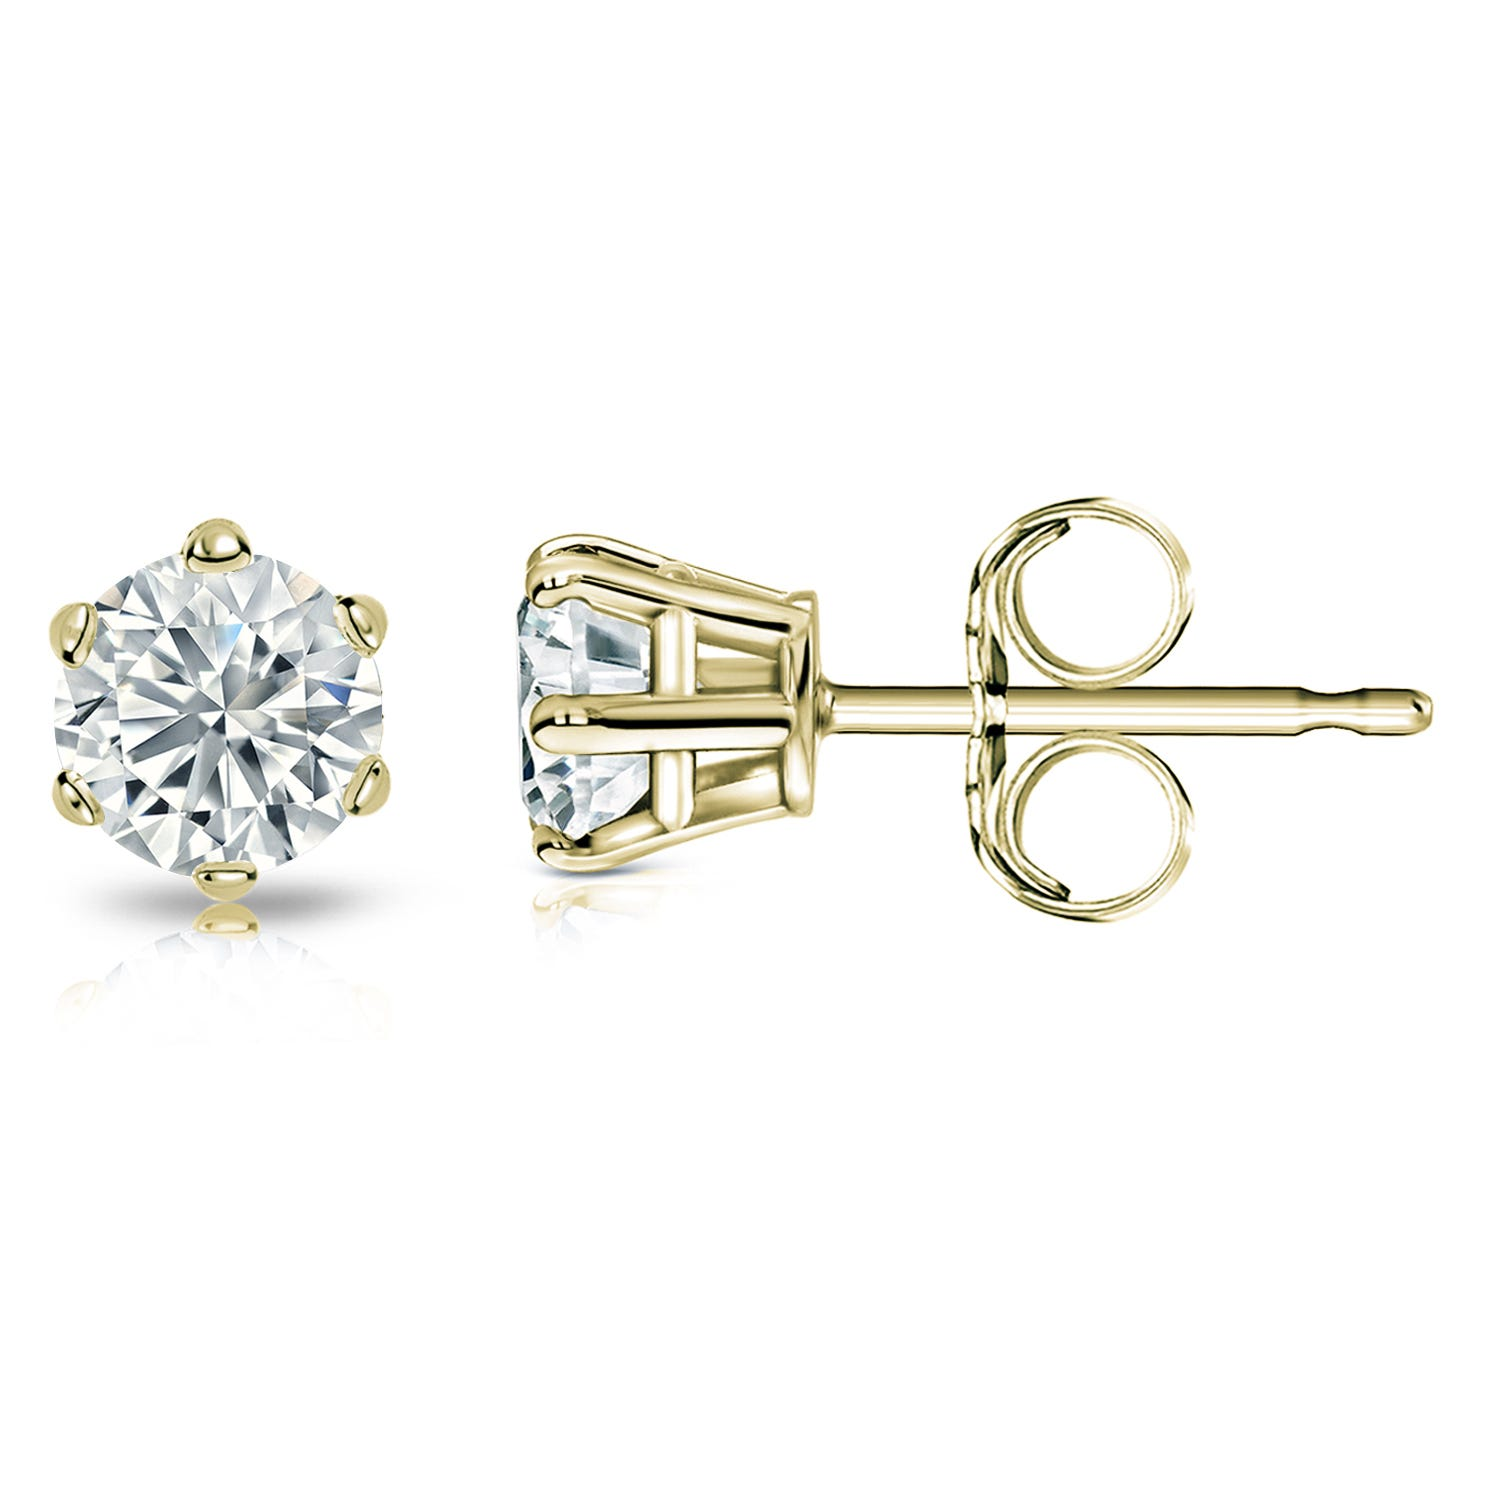 Round Diamond 1ctw. (IJ-SI2) Solitaire Stud 6-Prong Earrings in 14K Yellow Gold